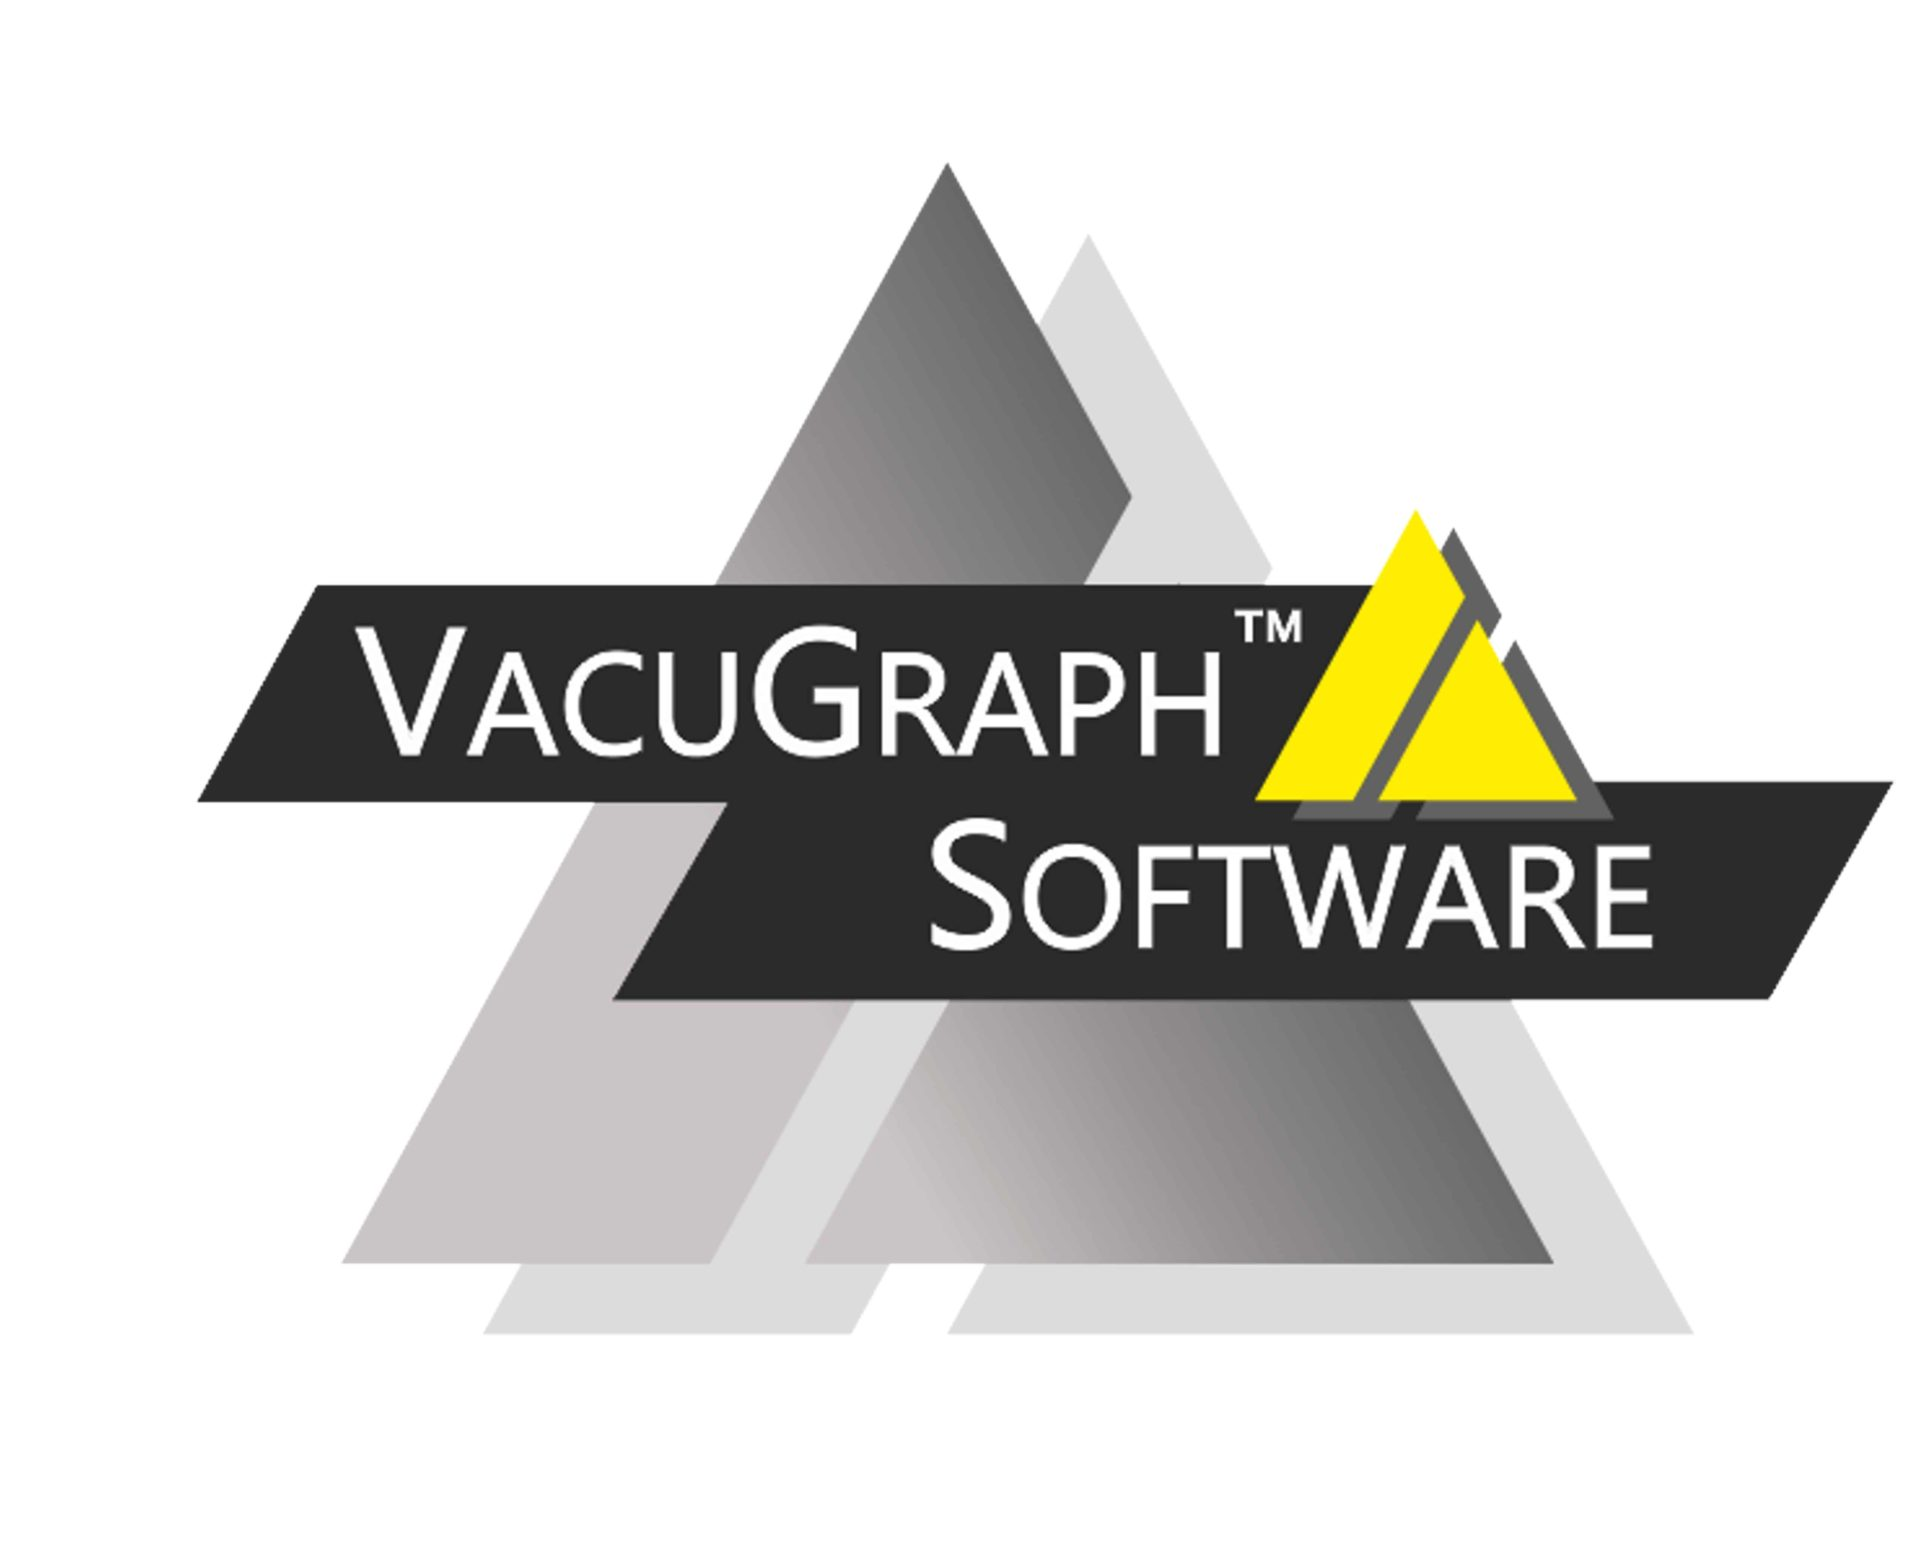 VacuGraph Vakuum Software